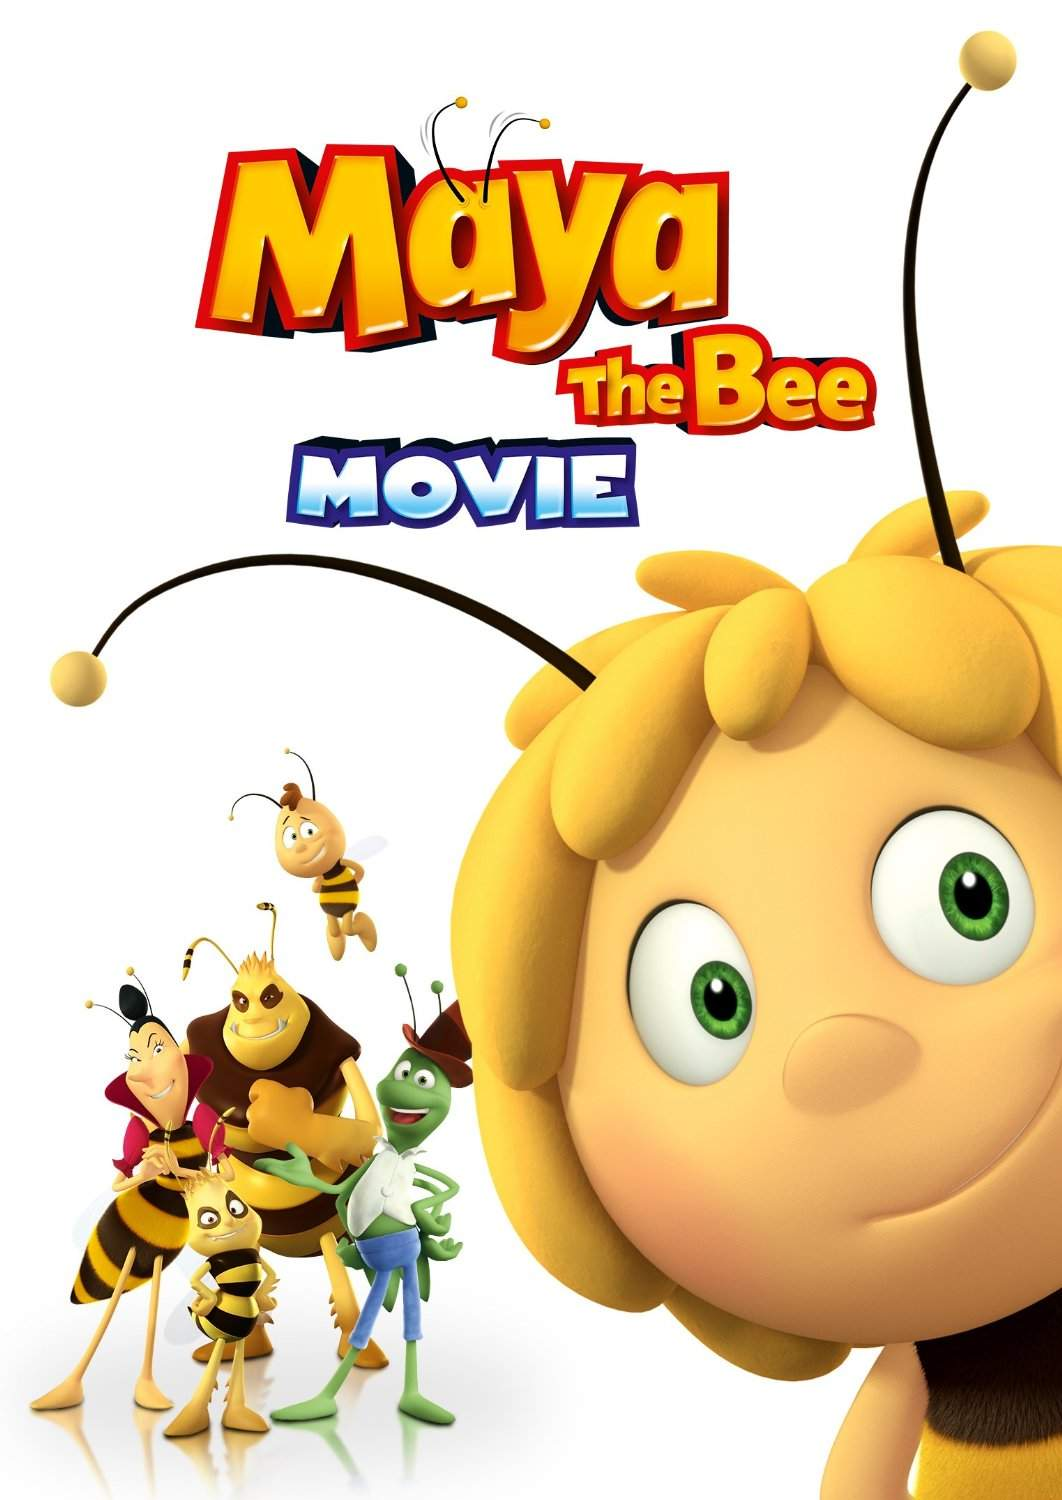 Maya the Bee Movie (2014) – Luați-vă glicemia înainte!